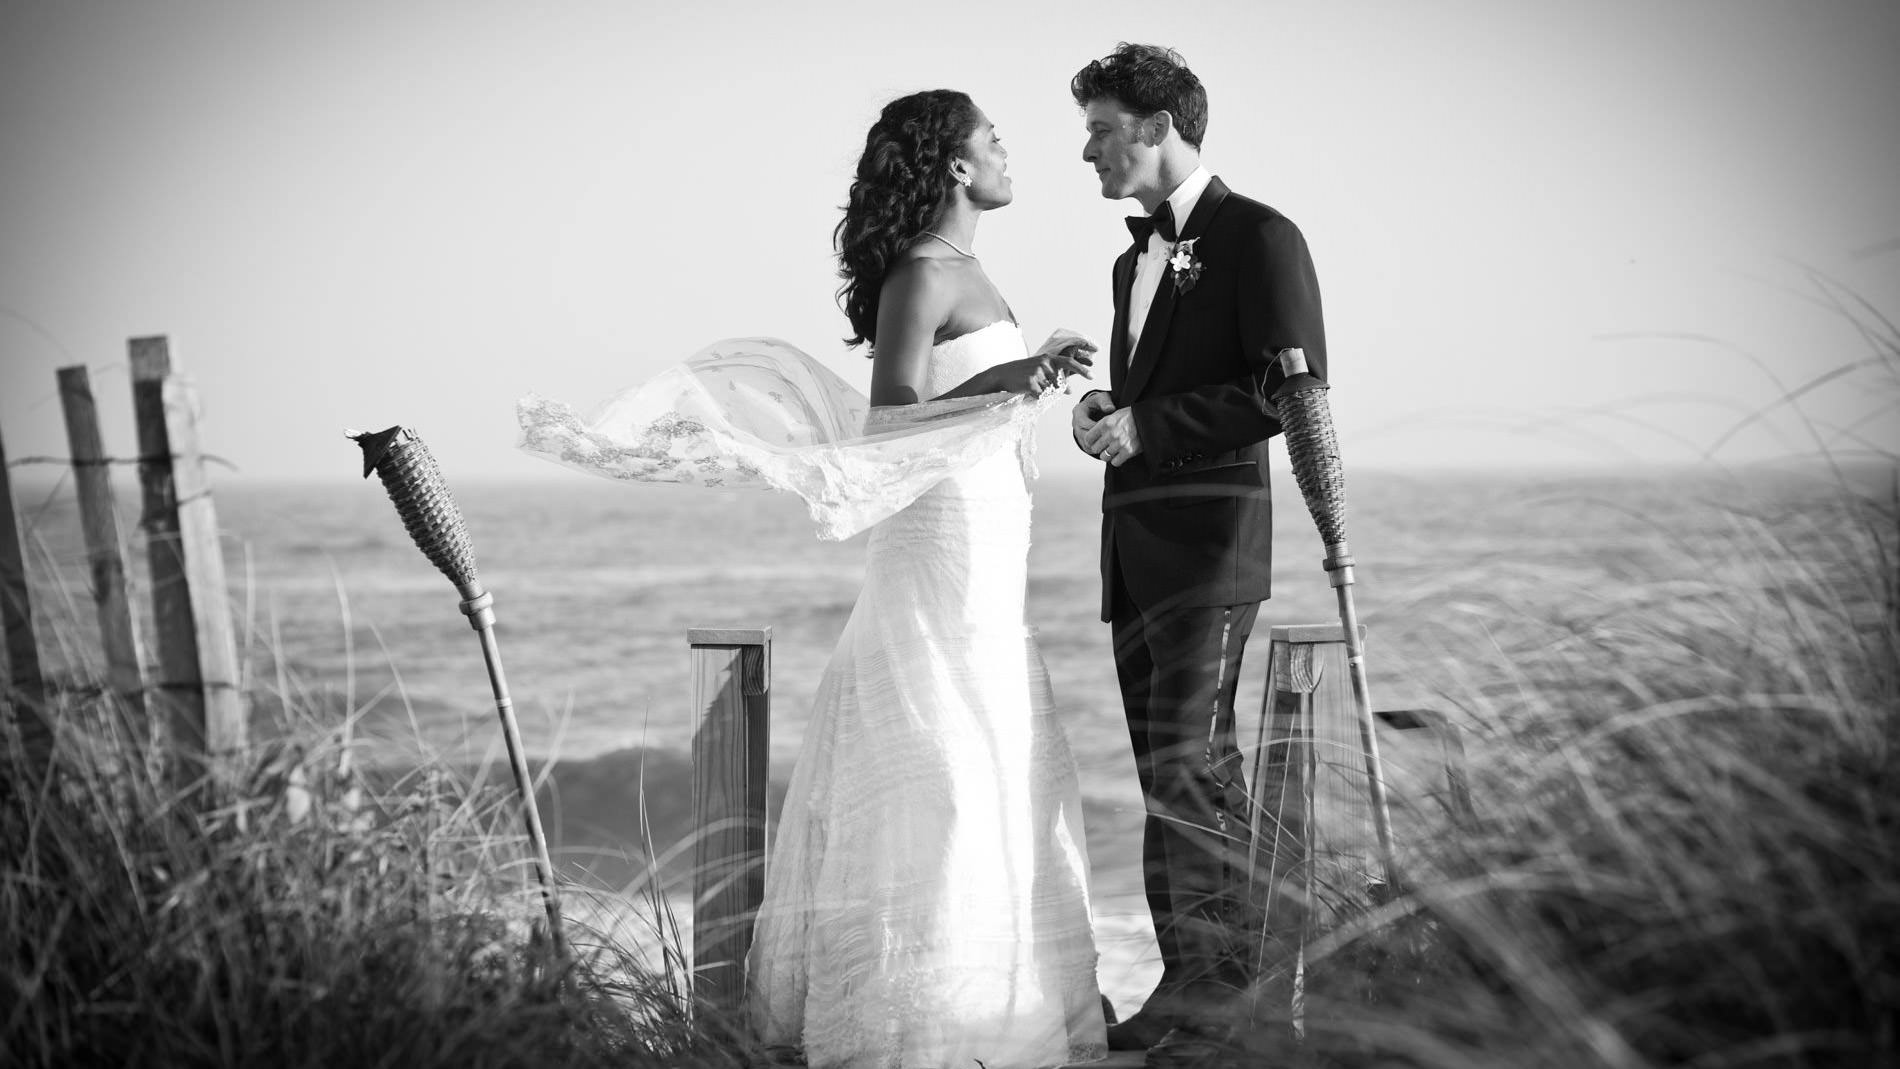 Bride and Groom in B&W photo